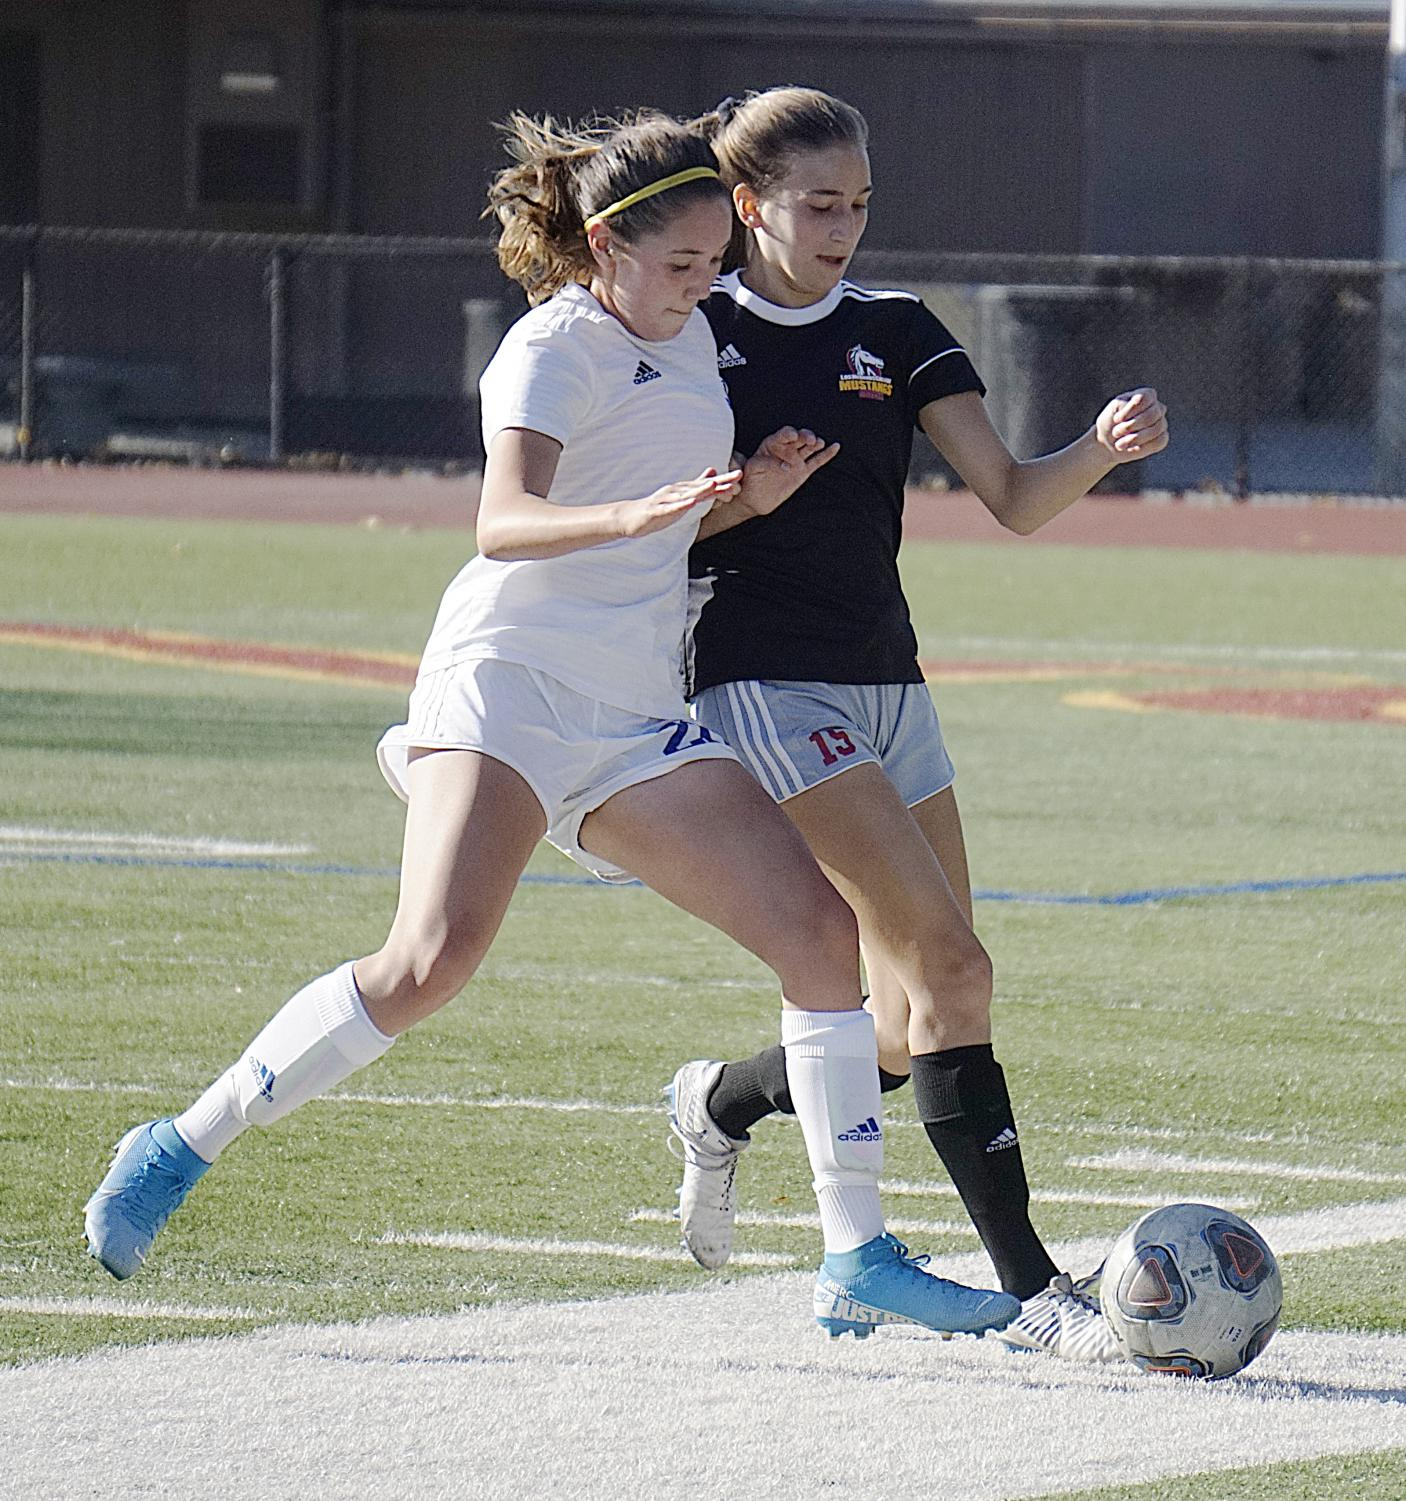 Eryn Wheatley, No. 15, battles for the ball during a defensive play in a soccer game against Solano College.